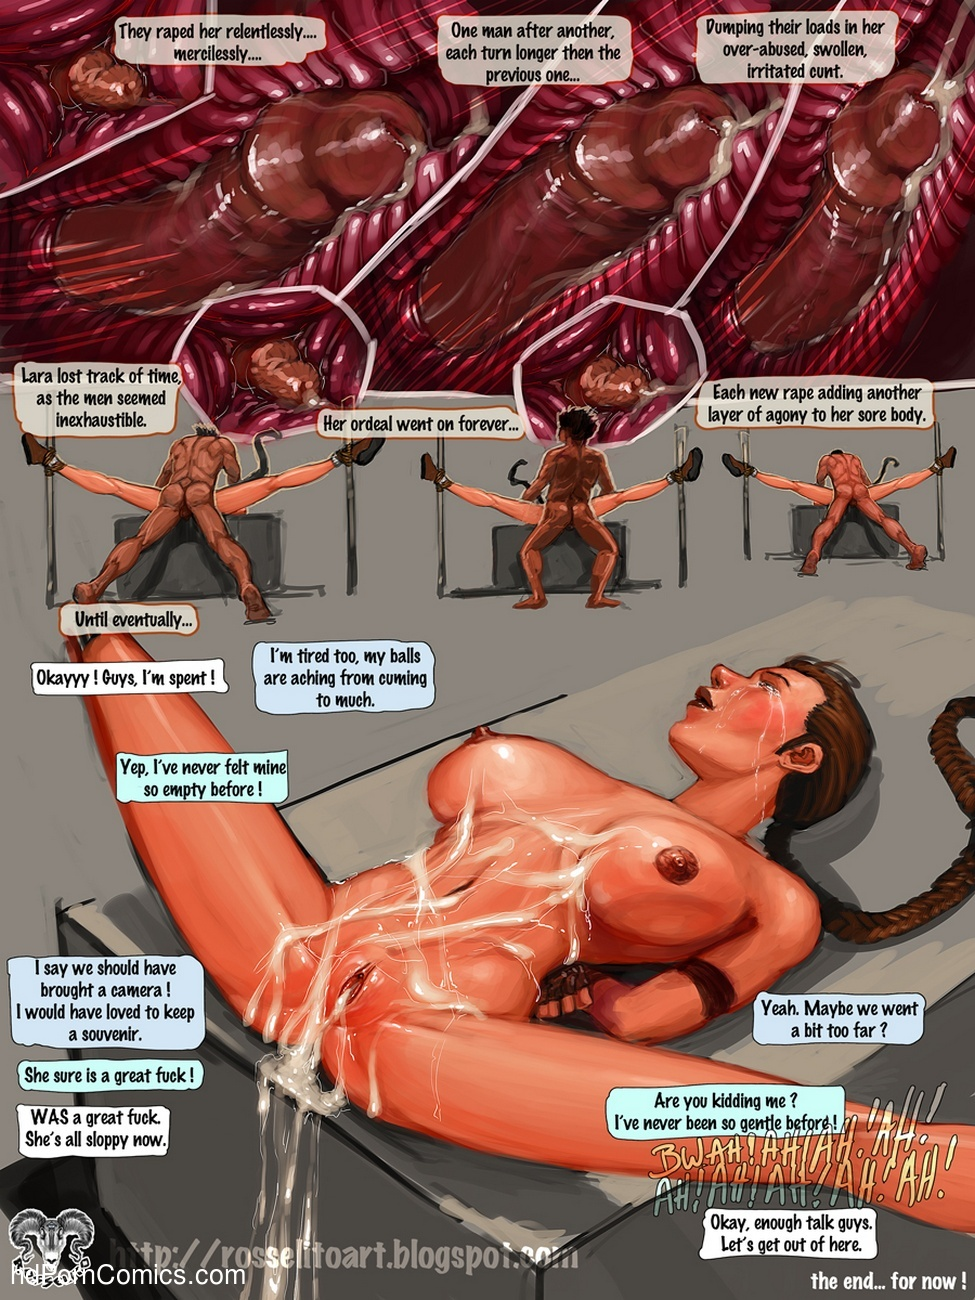 Lara Raped In Tomb Sex Comic